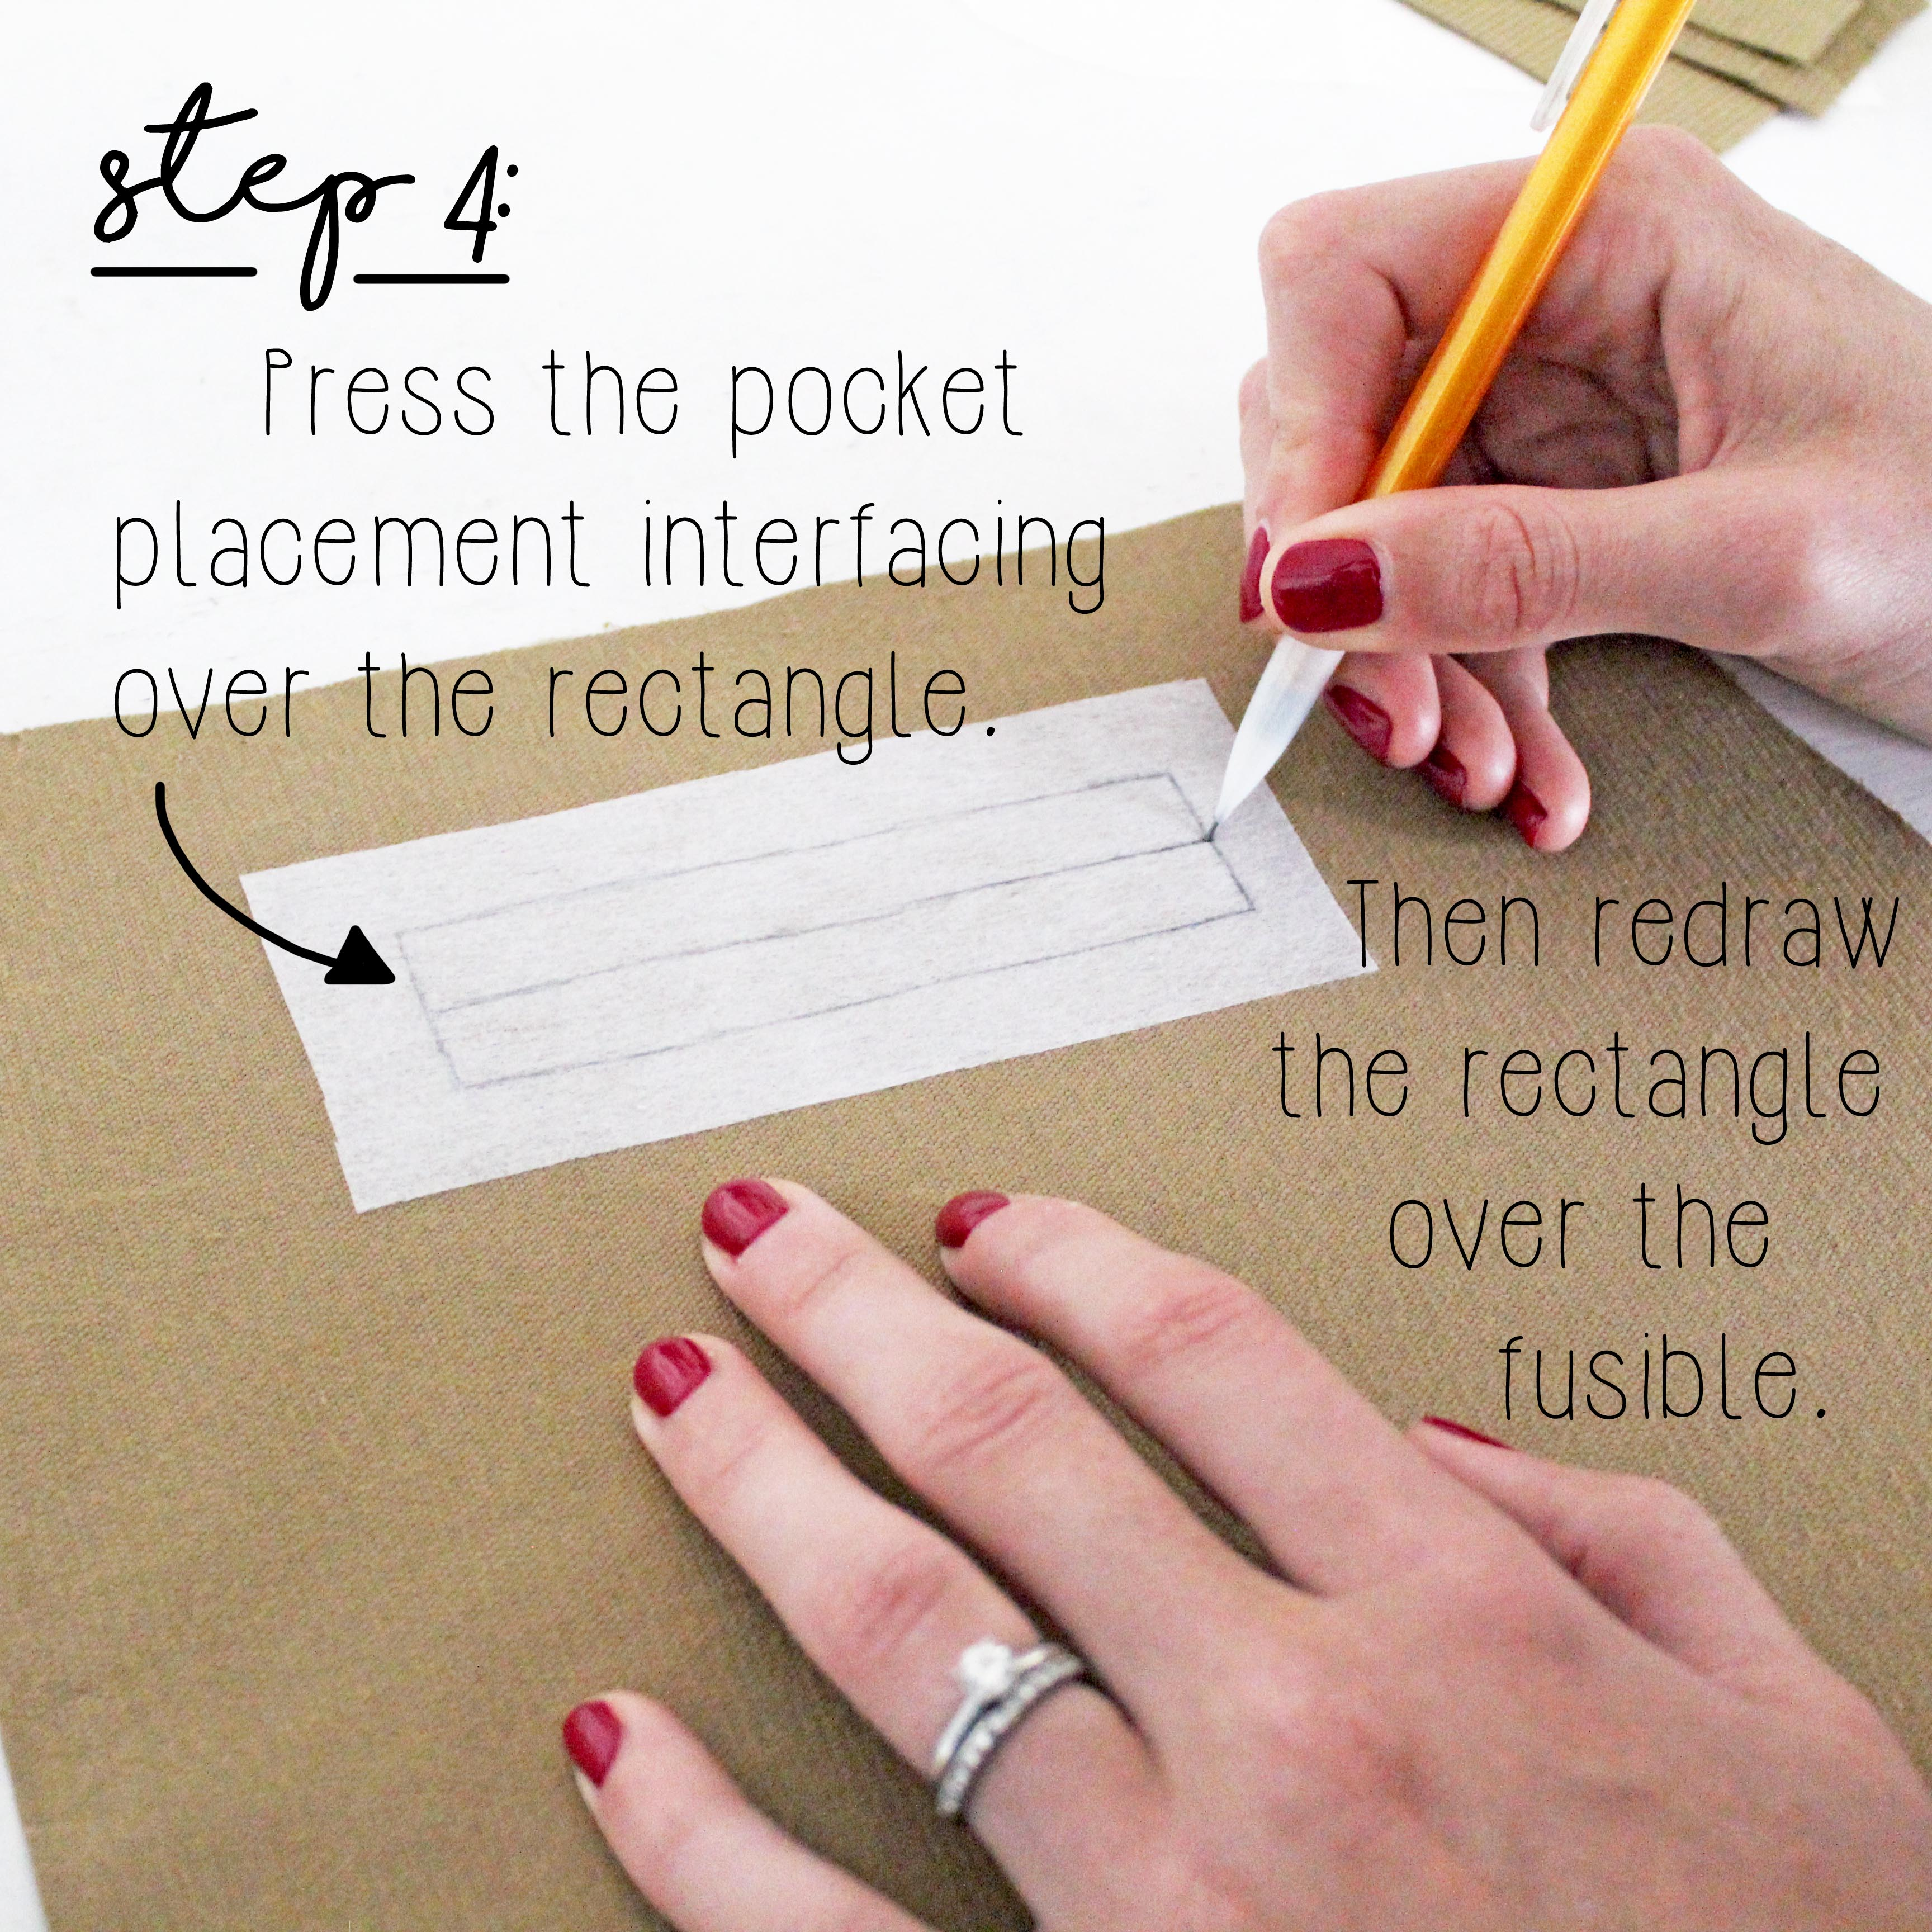 How To Sew A Double Welt Pocket Sewing Tutorial: Step 4